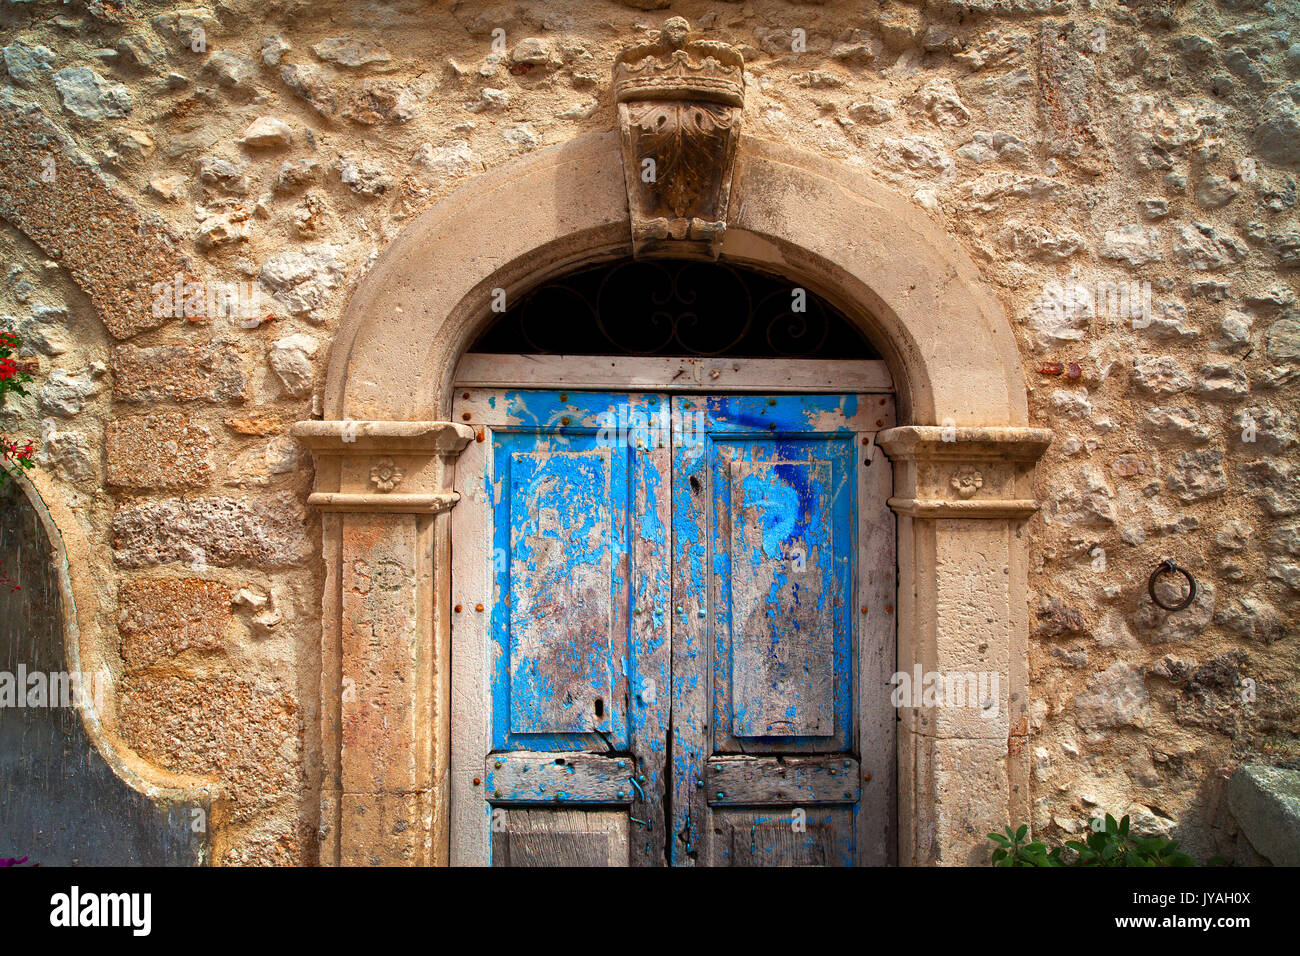 Old wooden doors in the Abruzzo region of Italy. - Stock Image